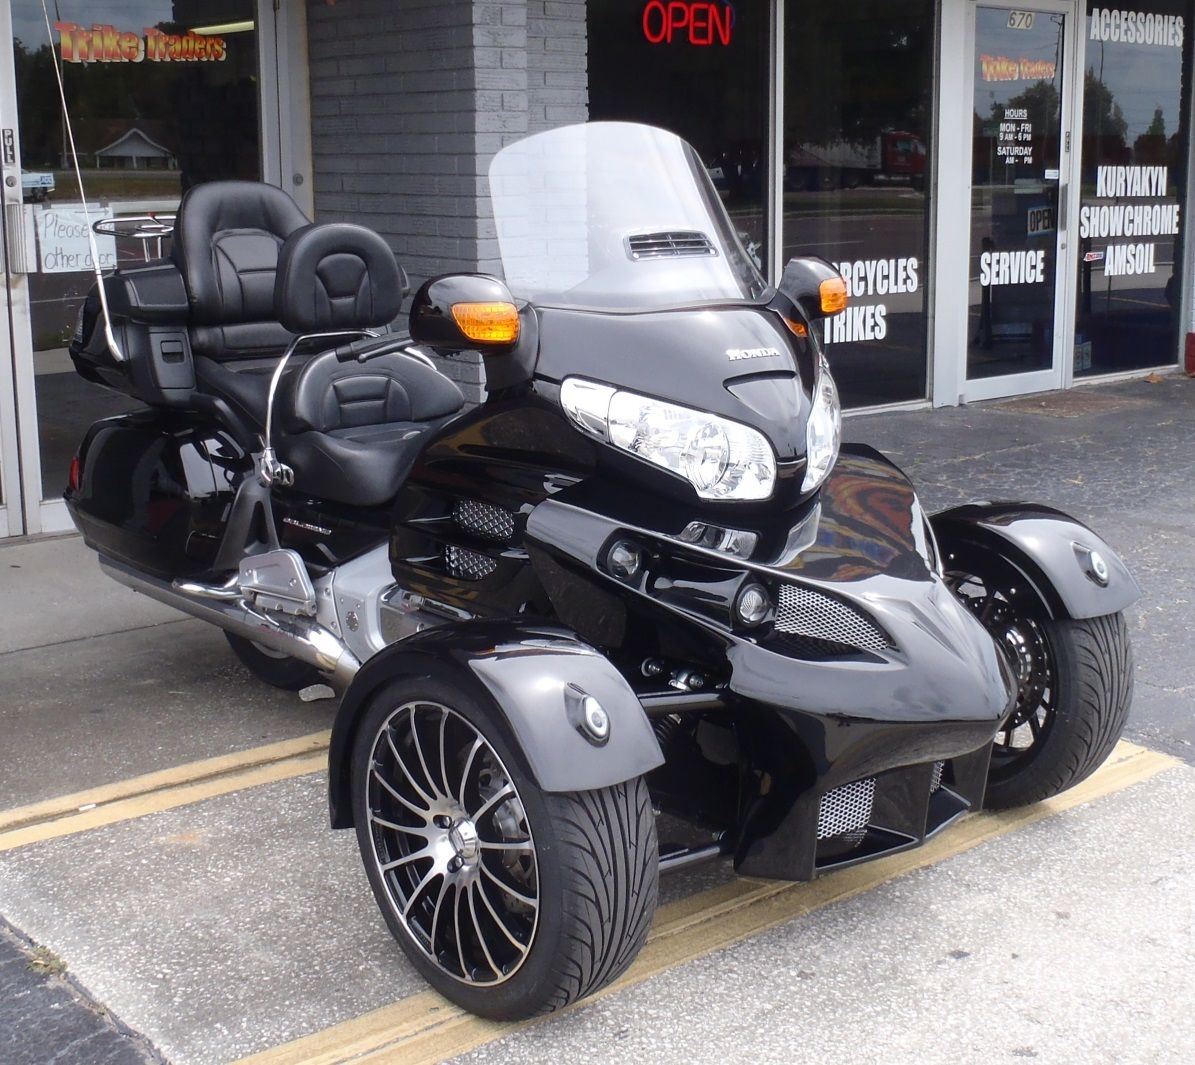 R18 R-18 R 18 Reverse Trike From Sturgis Motoren On